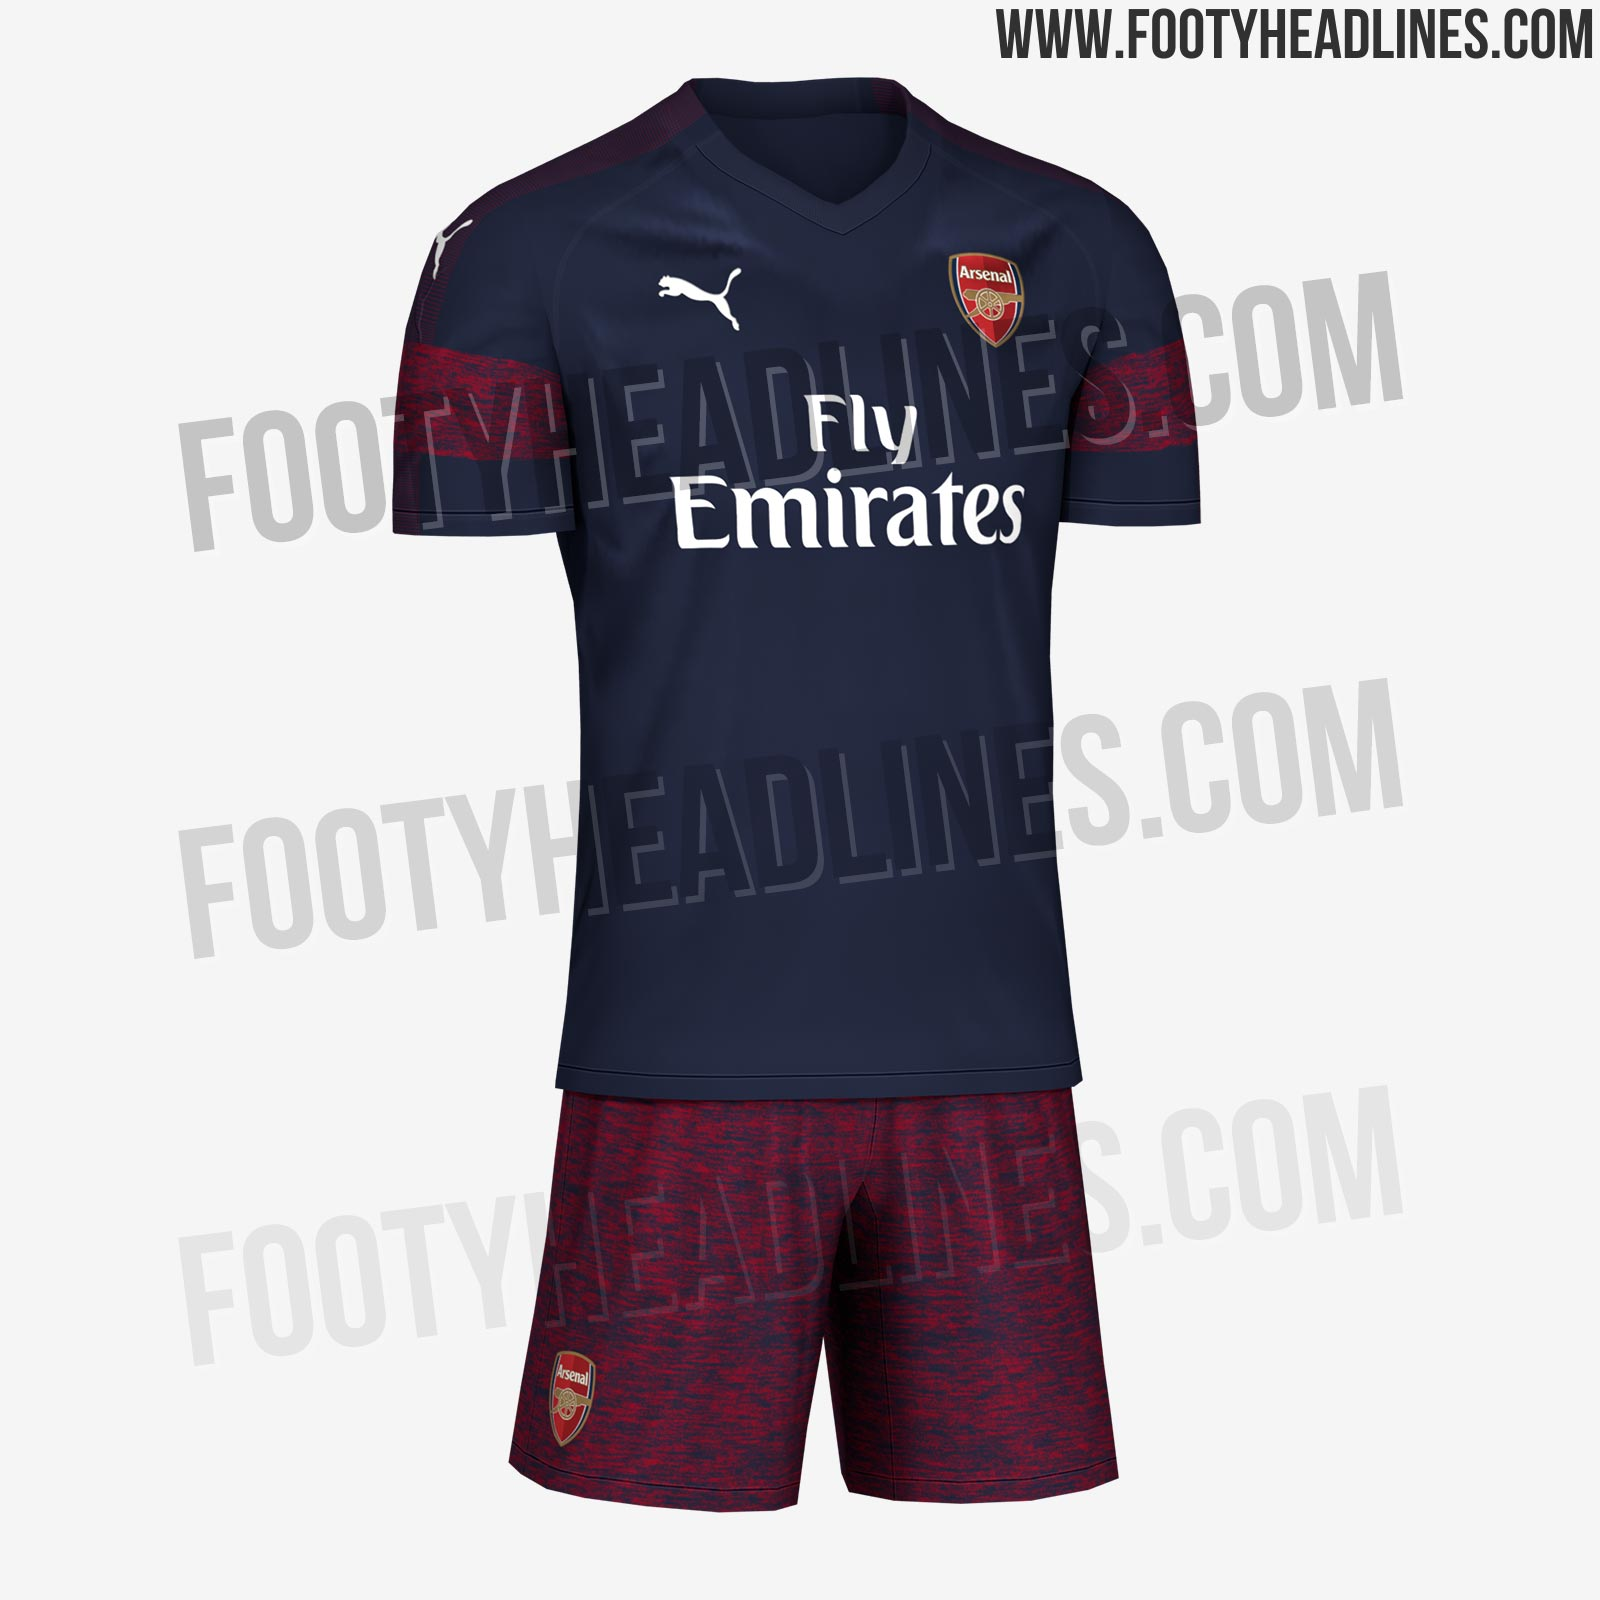 arsenal-18-19-away-kit-crazy-shorts-2.jp